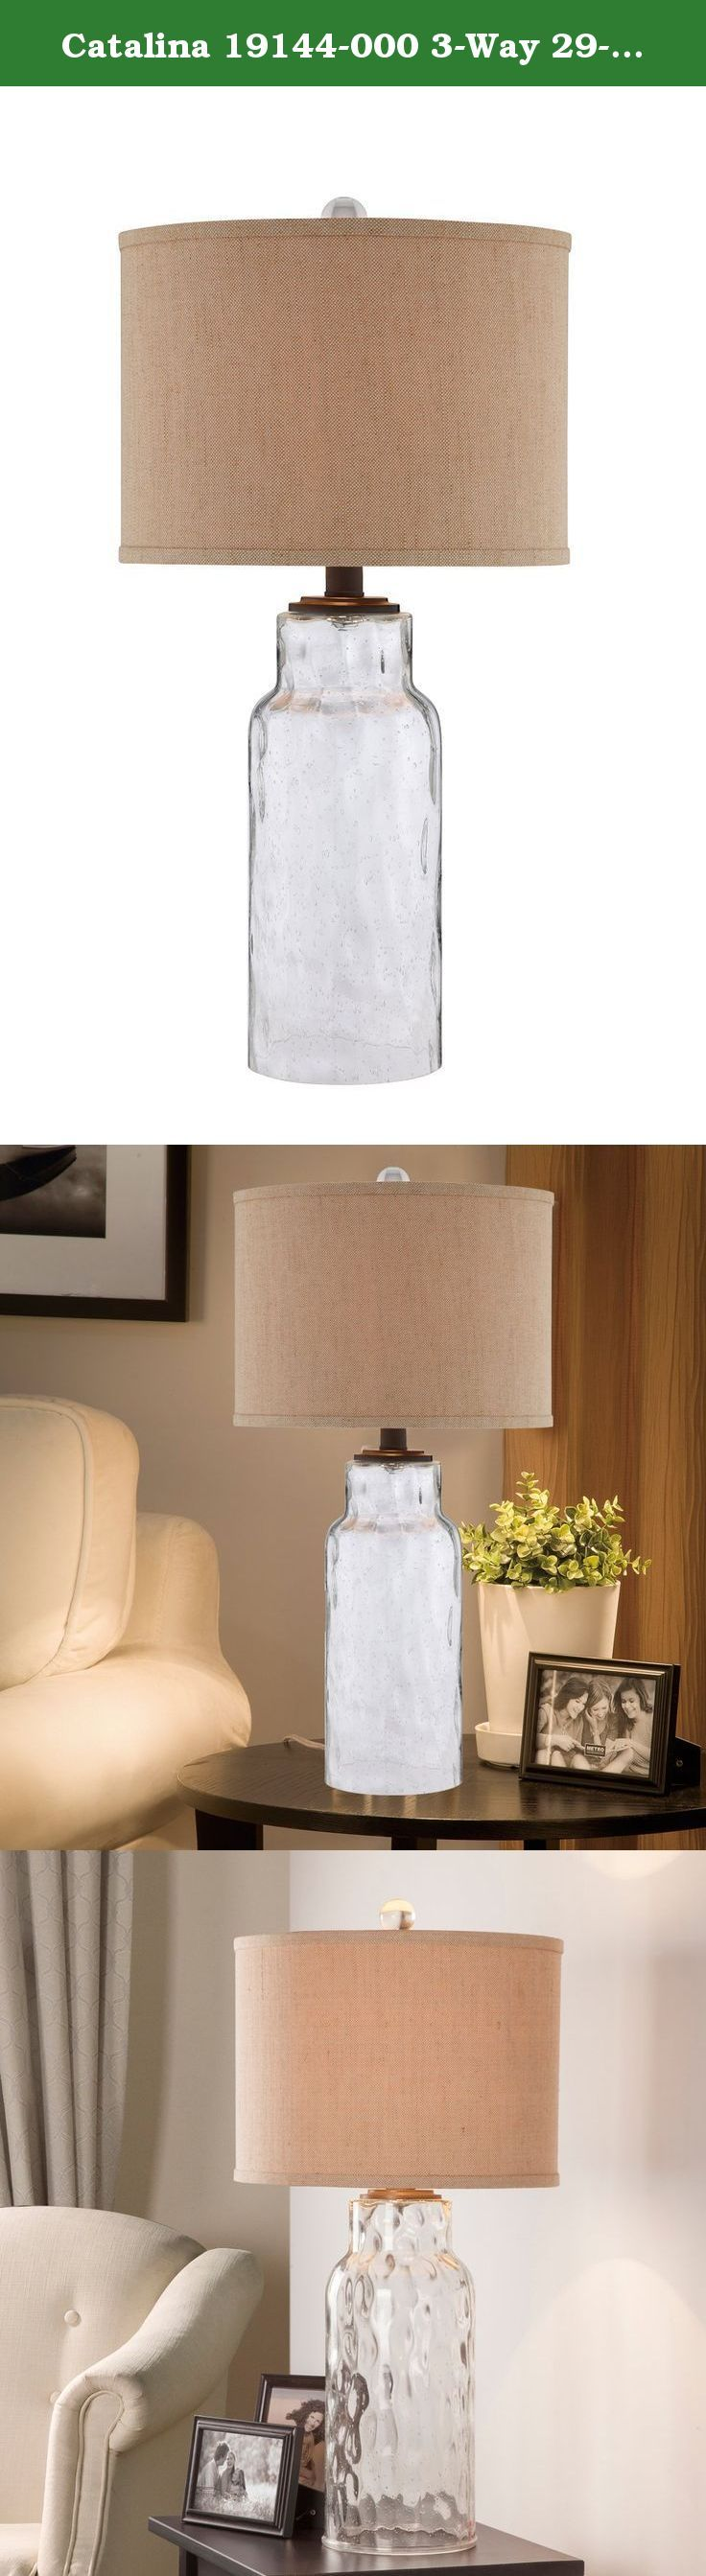 Catalina 19144-000 3-Way 29-Inch Clear Dimpled Glass Table Lamp with Textured Linen Drum Hardback Shade. The Catalina 19144-000 3-Way Table Lamp offers a stylish transitional design. The dimpled glass table lamp features a clear seeded base with metal accents in a dark bronze finish and textured linen drum hardback shade. This lamp is rated for 120-volts and uses a 3-way 150-watt incandescent bulb or 3-way E26 CFL spiral bulb. Bulb not included. The light source is soft and the…